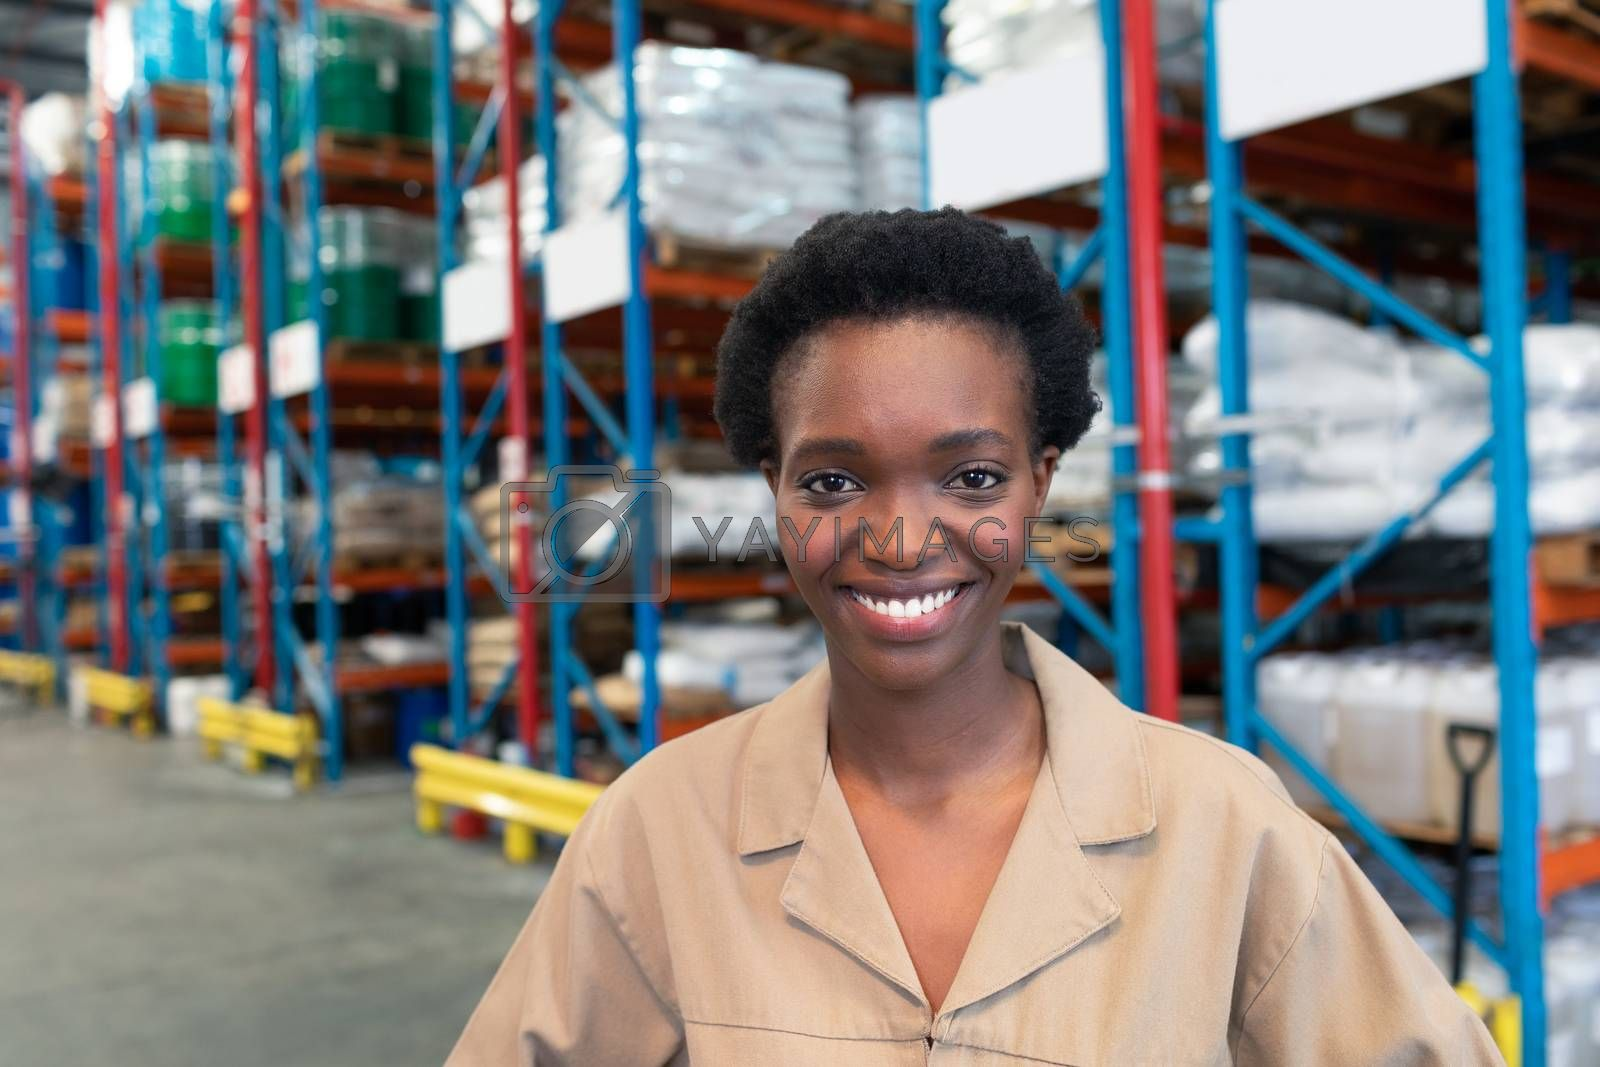 Portrait close-up of beautiful young African-american female staff looking at camera in warehouse. This is a freight transportation and distribution warehouse. Industrial and industrial workers concept